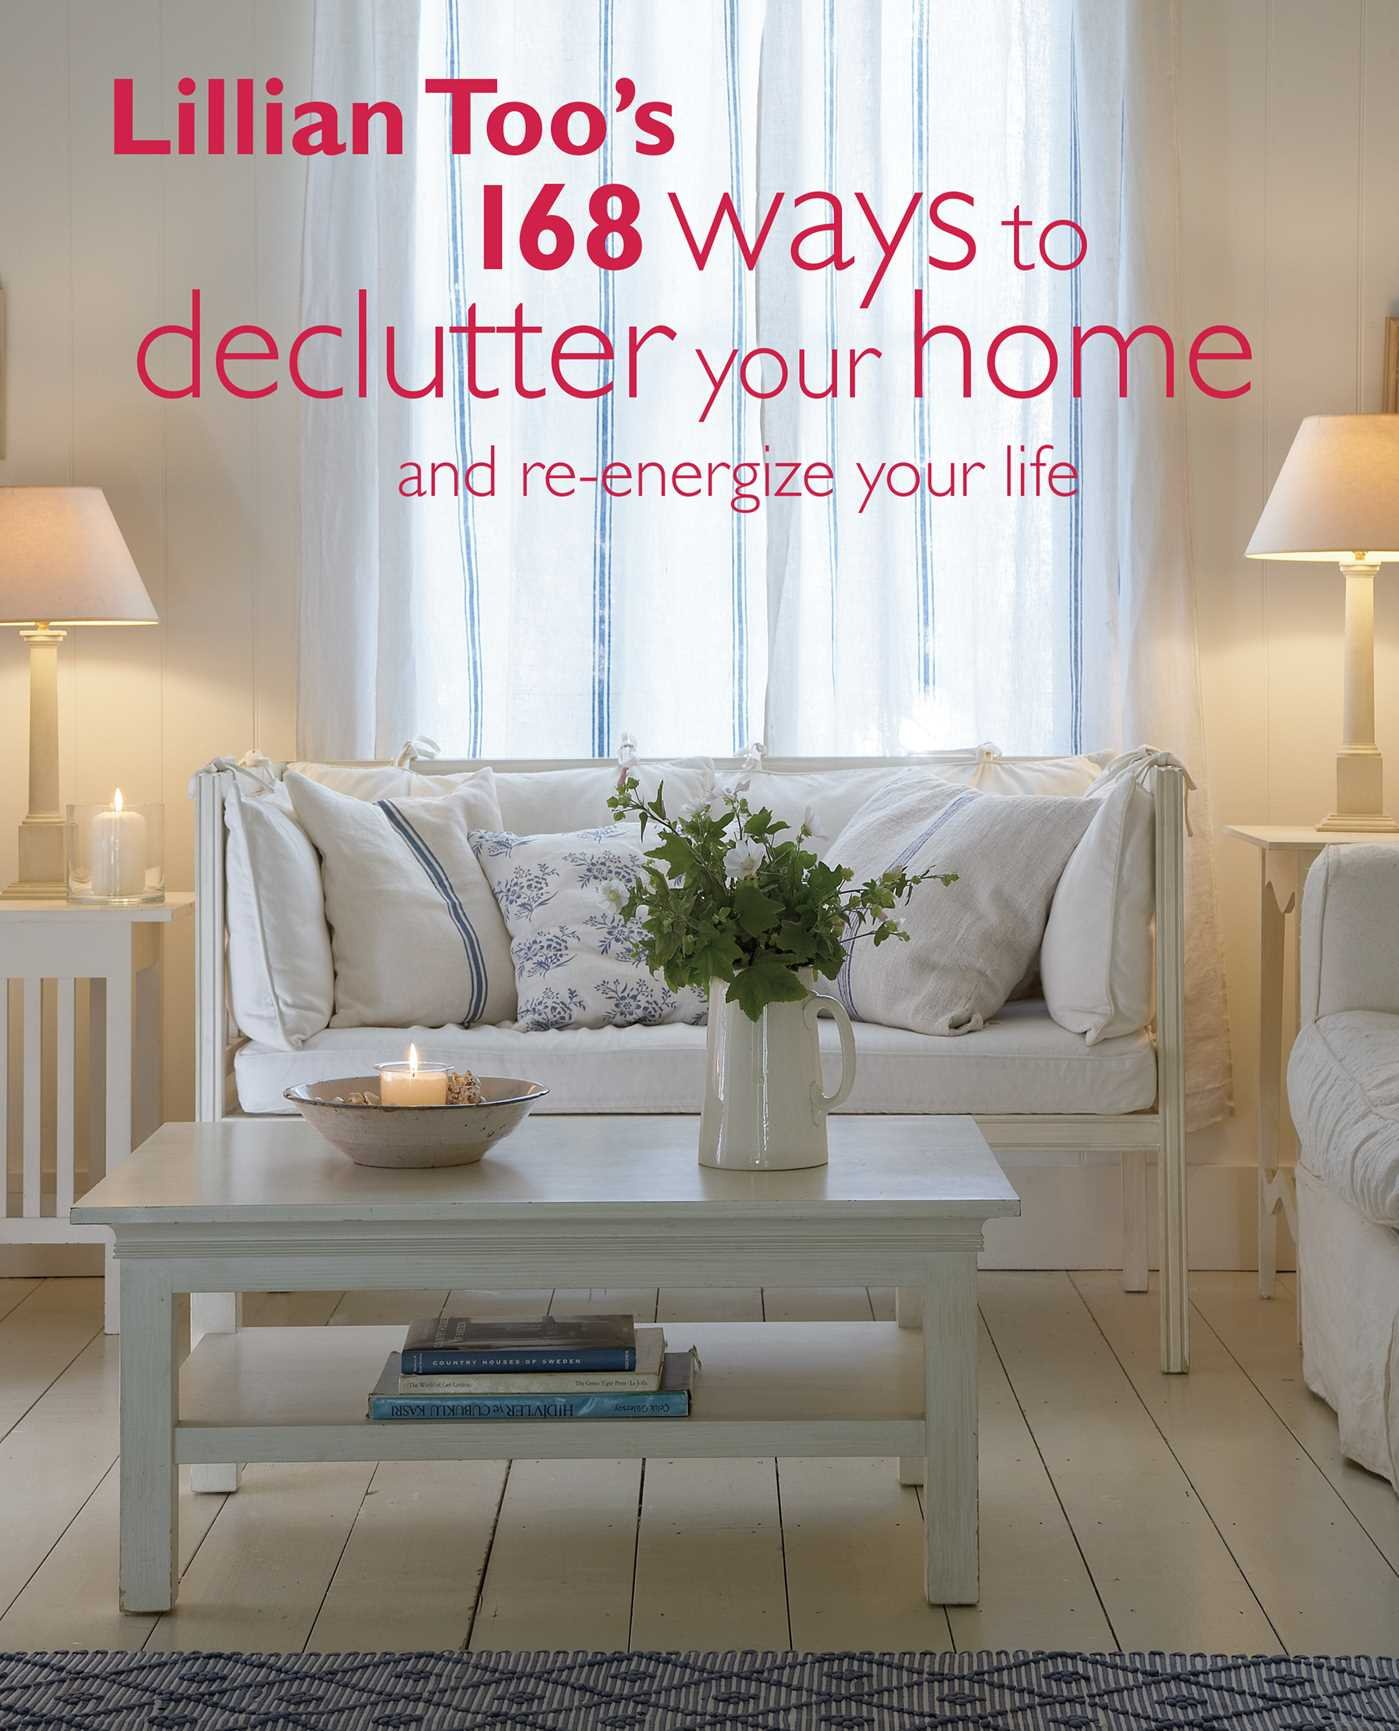 Lillian Toos Ways Declutter Your